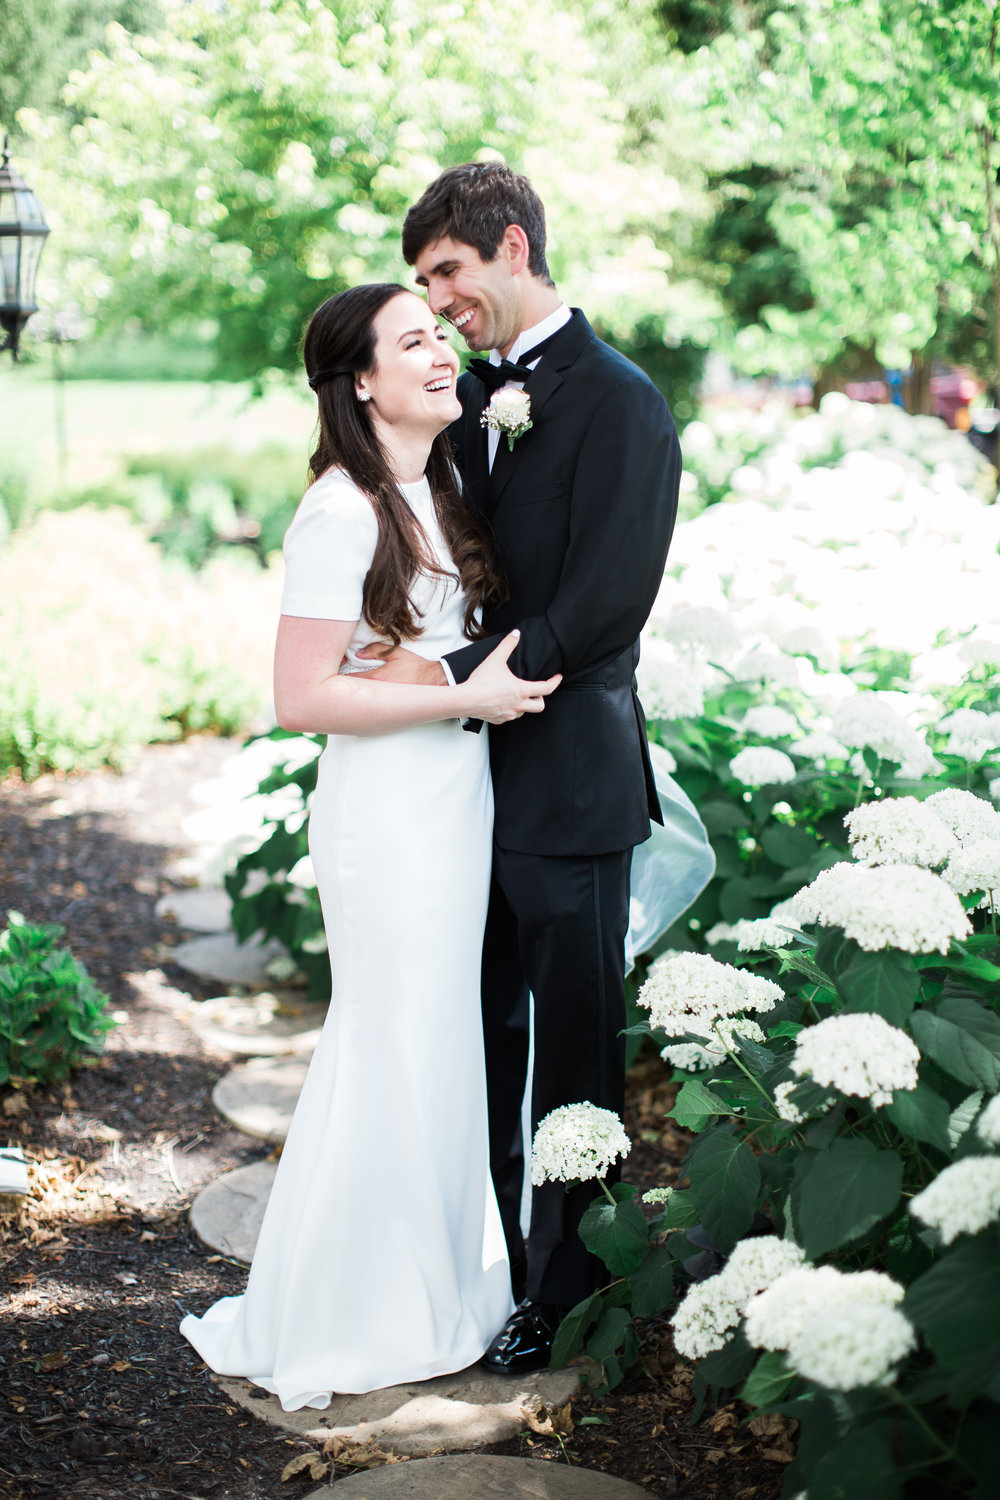 Katelyn_Wollet_Photography_Ann_Arbor_Wedding-17.jpg